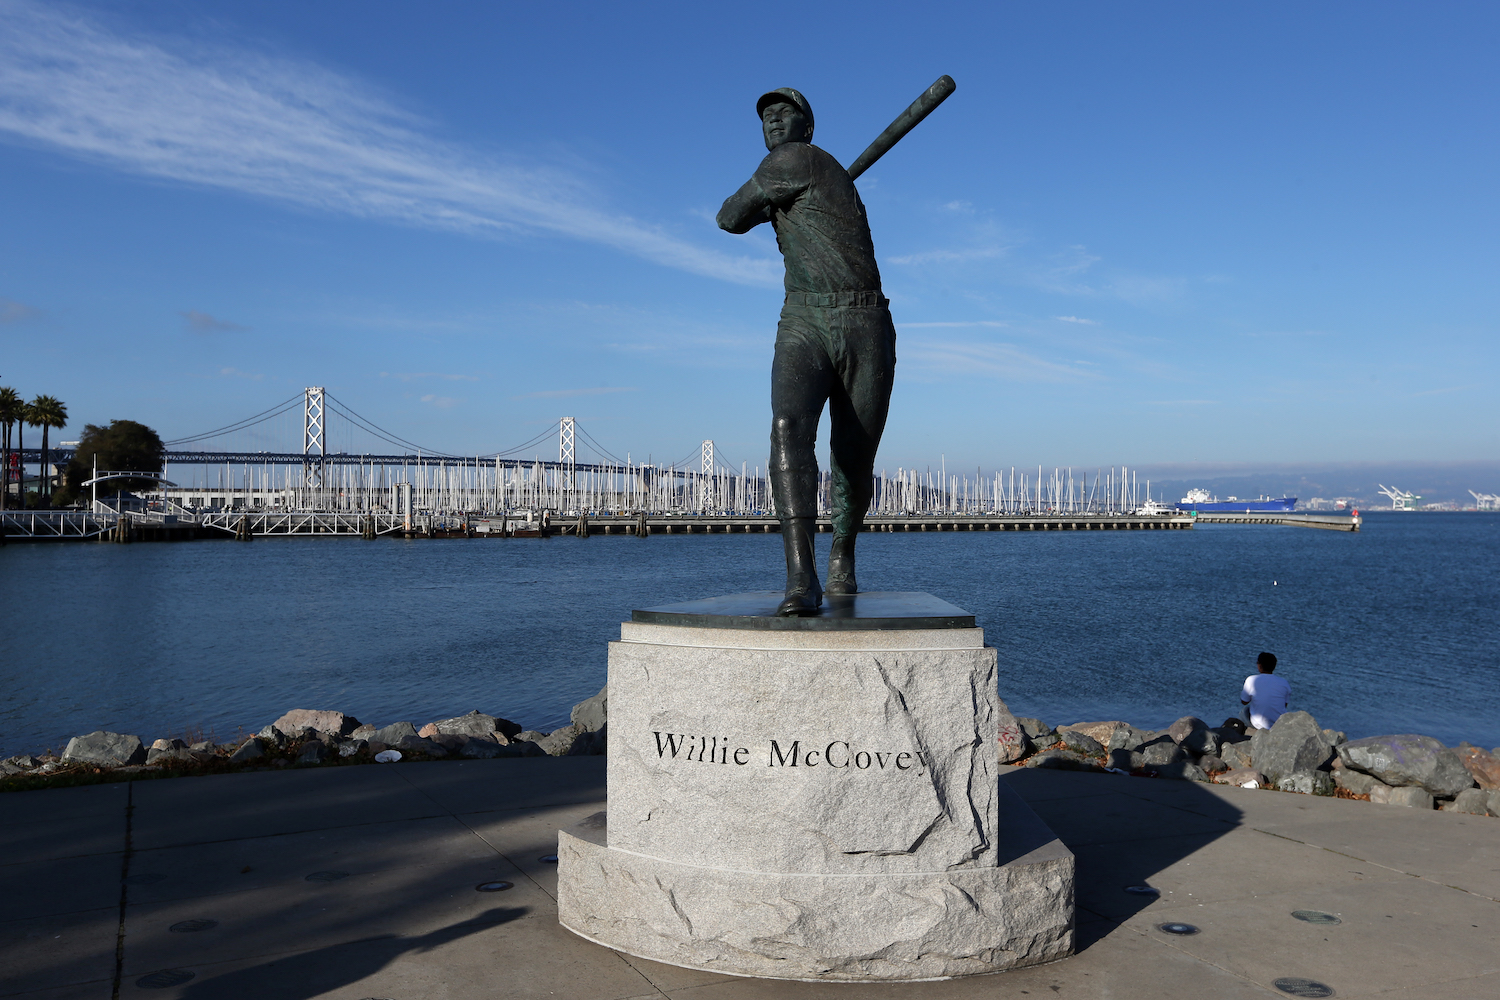 San Francisco Giants Removed Willie McCovey Statue from Oracle Park for Surprising Reason